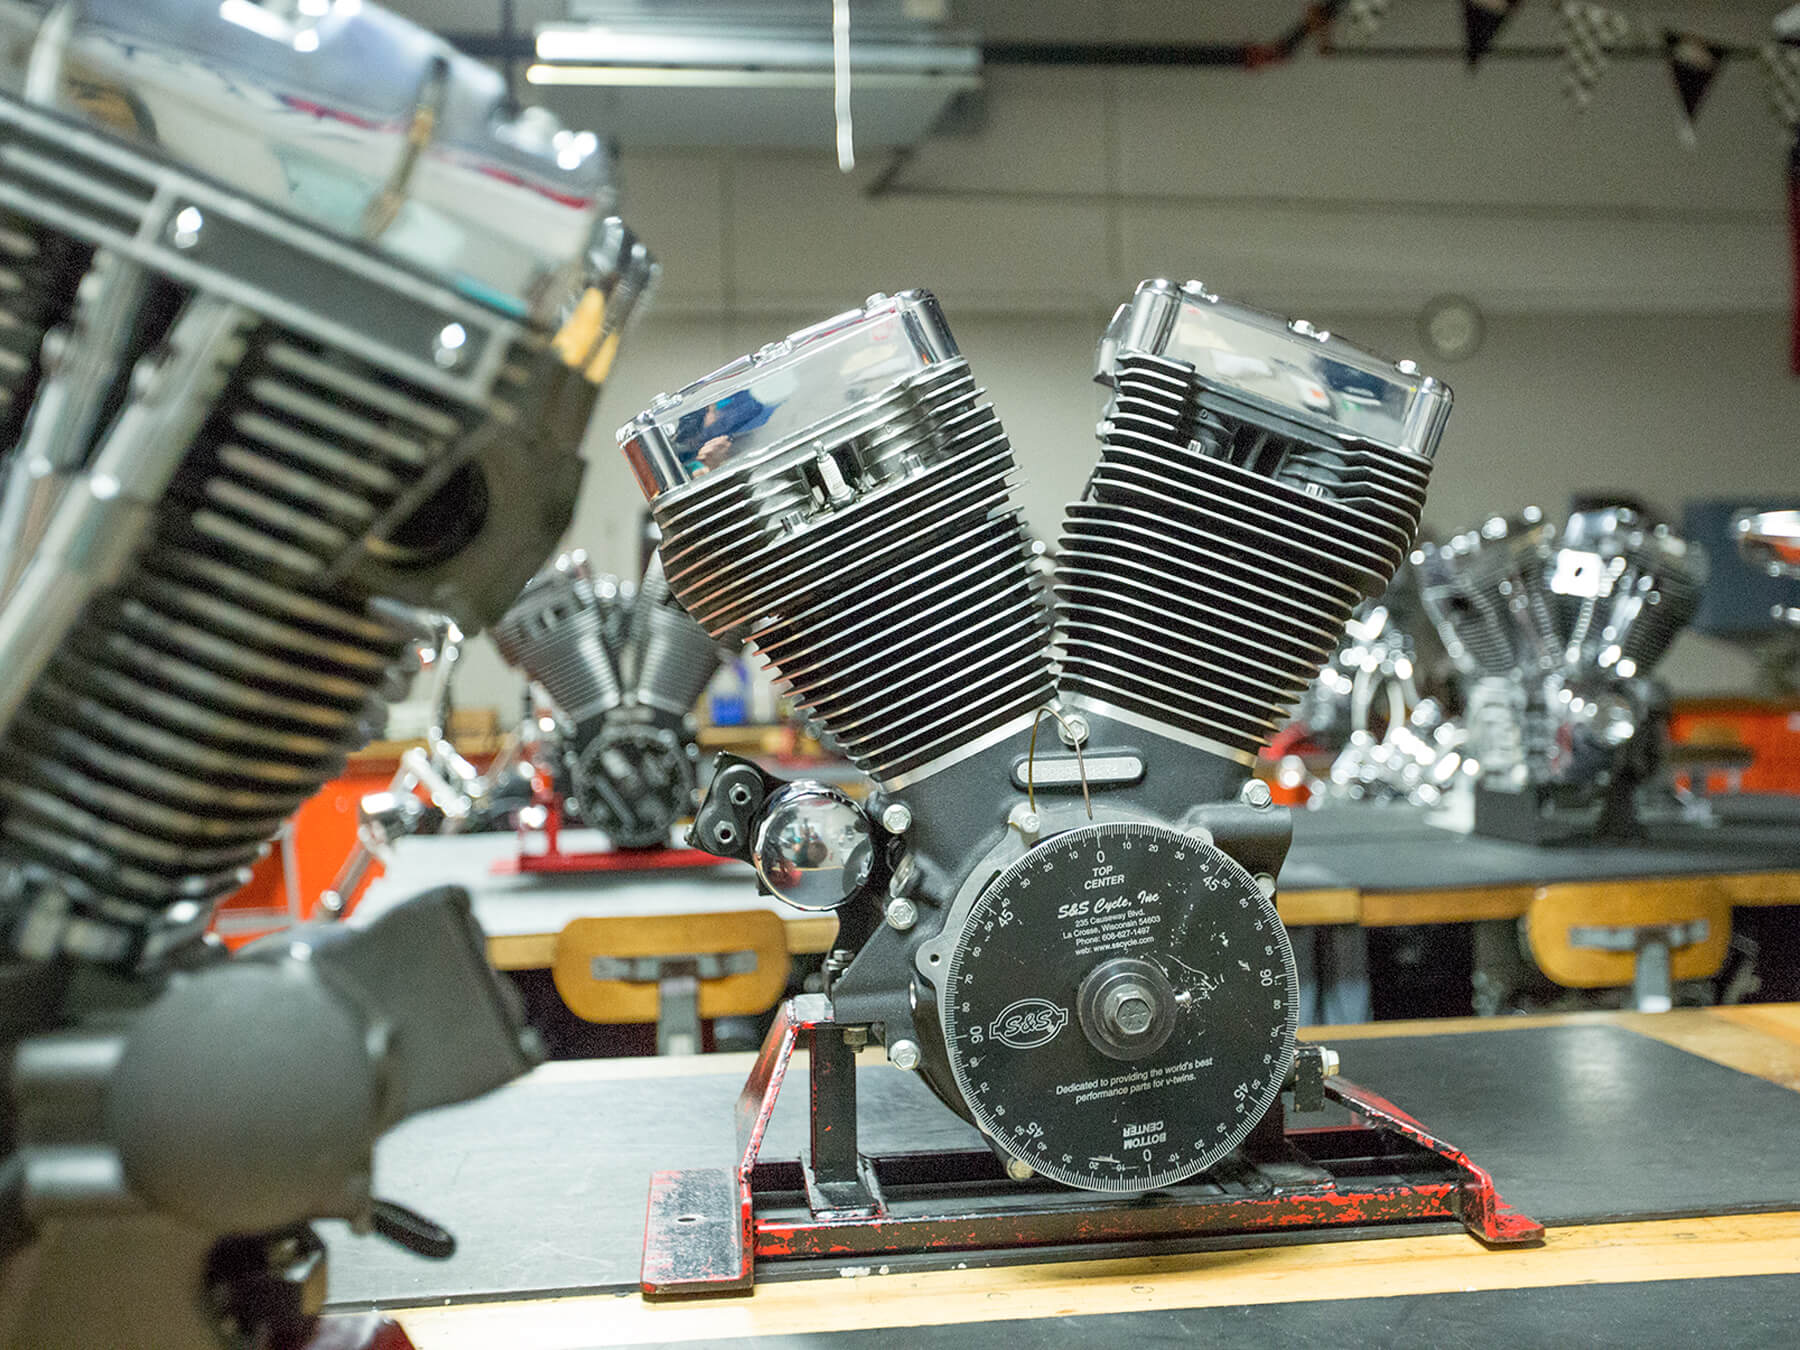 Photo of a Motorcycle engine